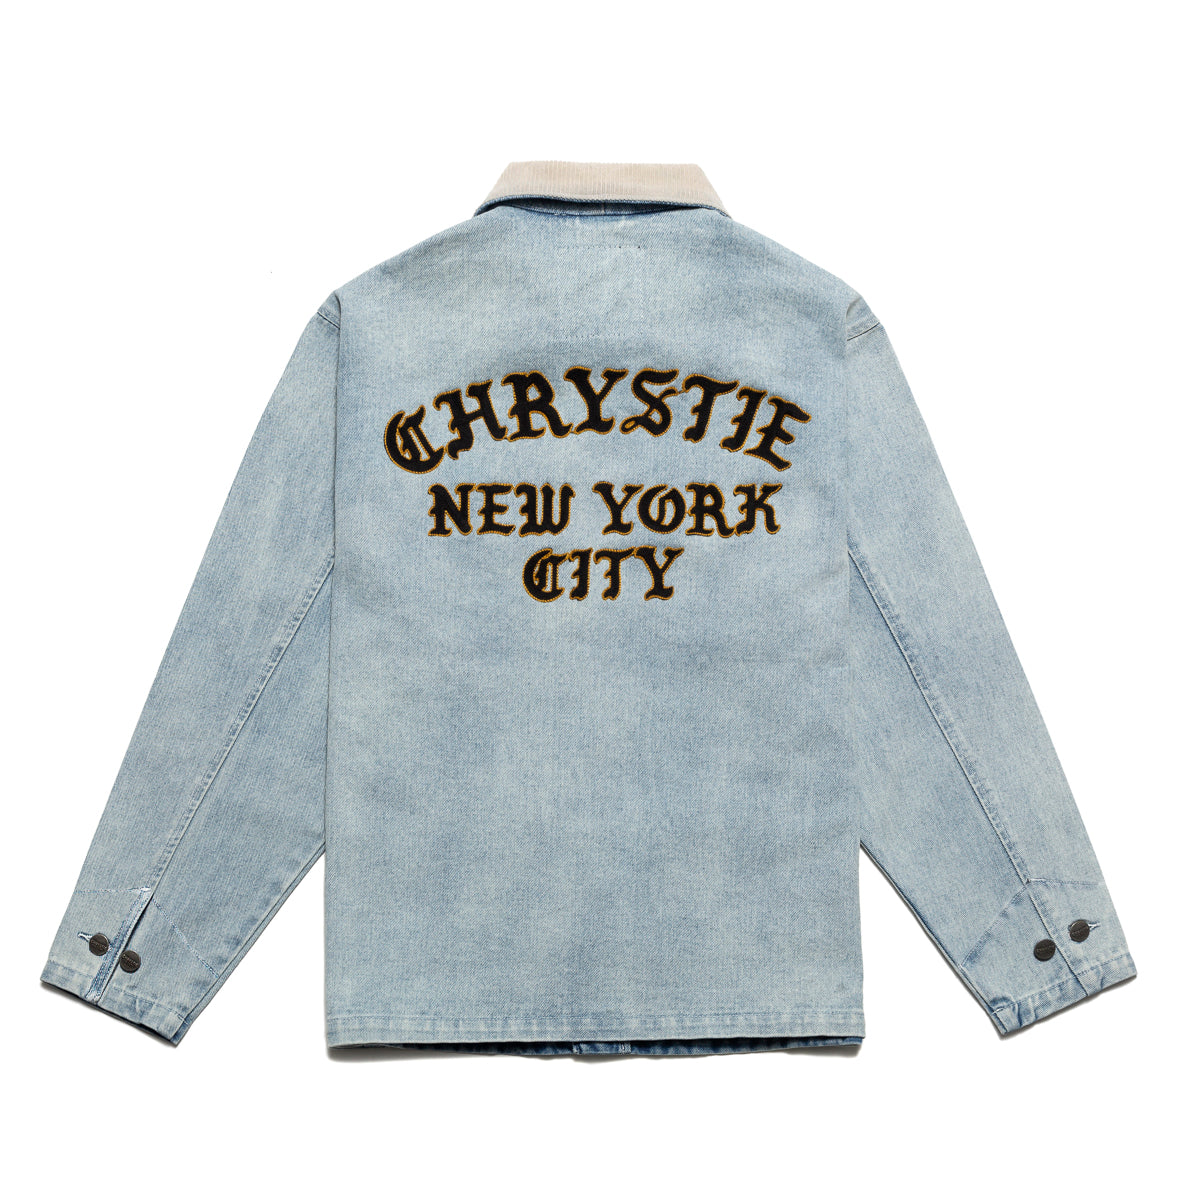 Load image into Gallery viewer, Chain stitch embroidery logo denim jacket